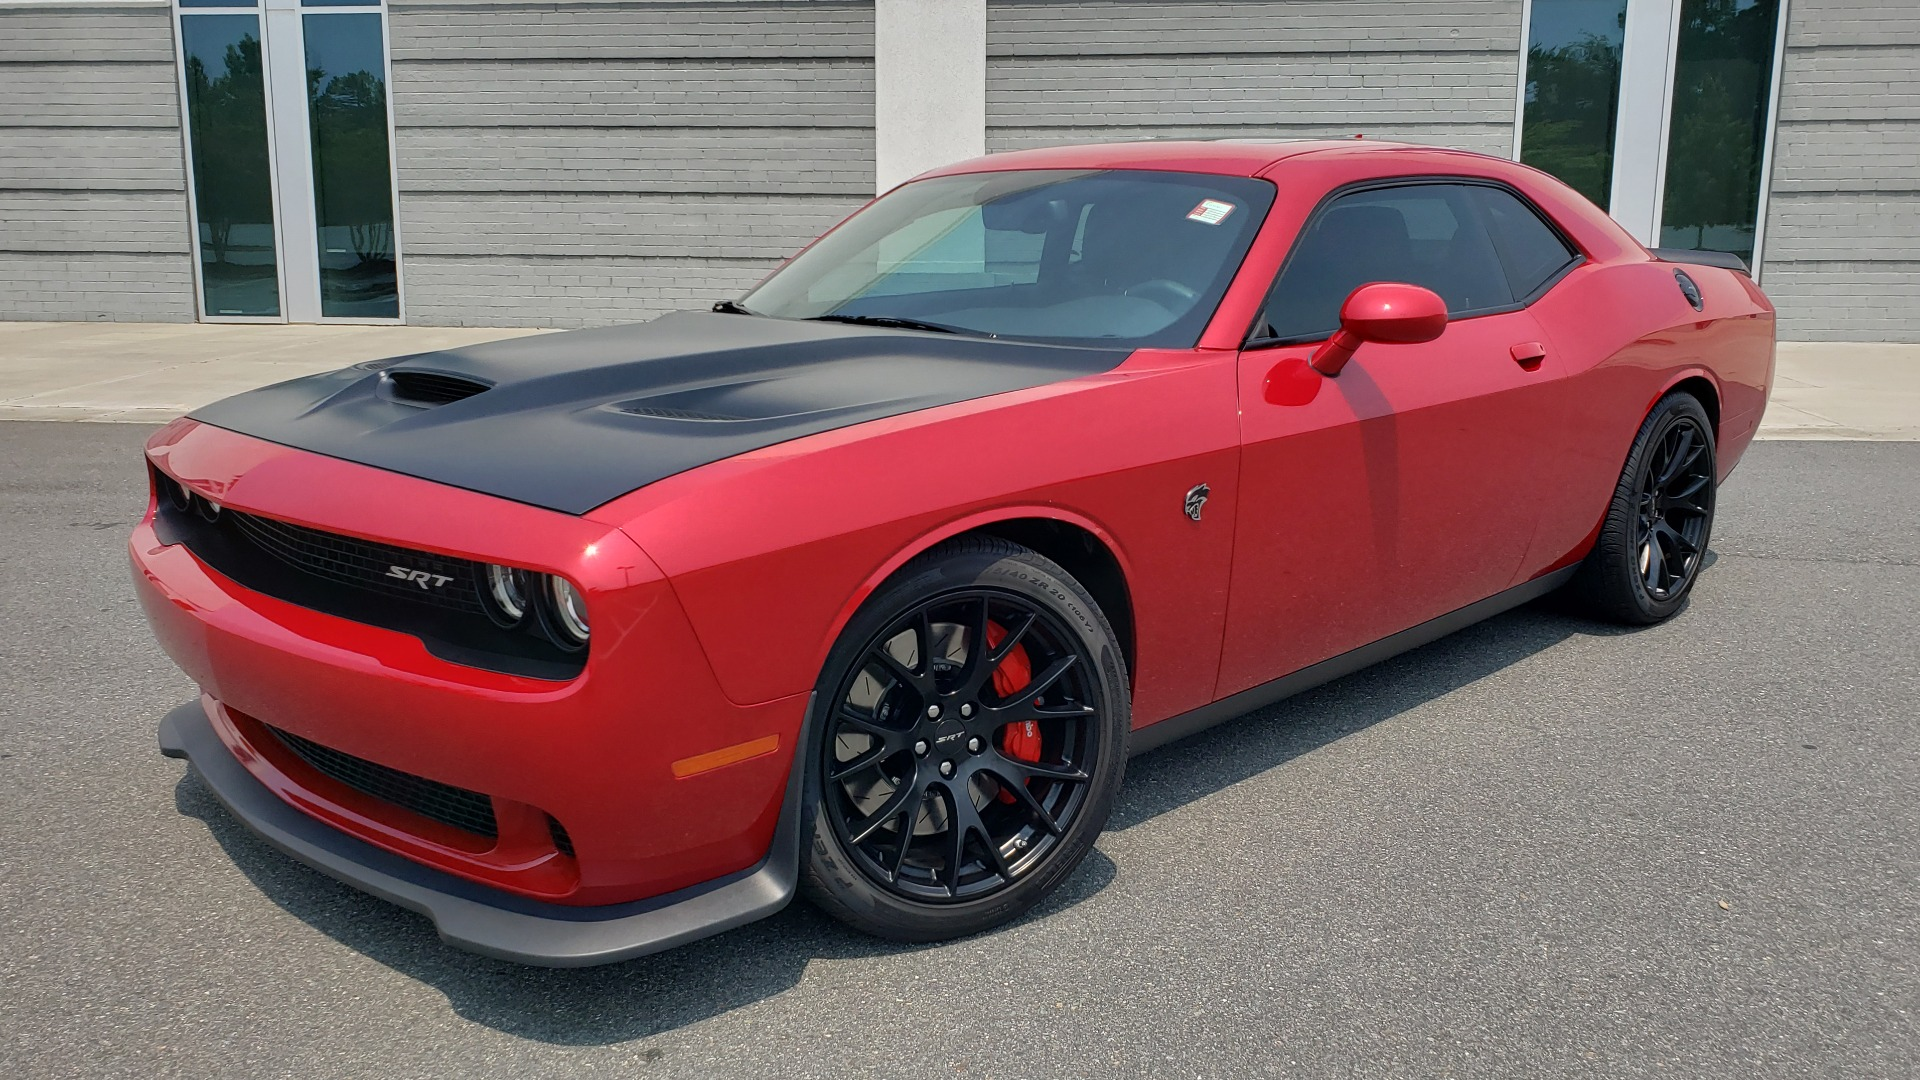 Used 2016 Dodge CHALLENGER SRT HELLCAT 707HP COUPE / AUTO / NAV / SUNROOF / H/K SND / REARVIEW for sale $60,995 at Formula Imports in Charlotte NC 28227 2